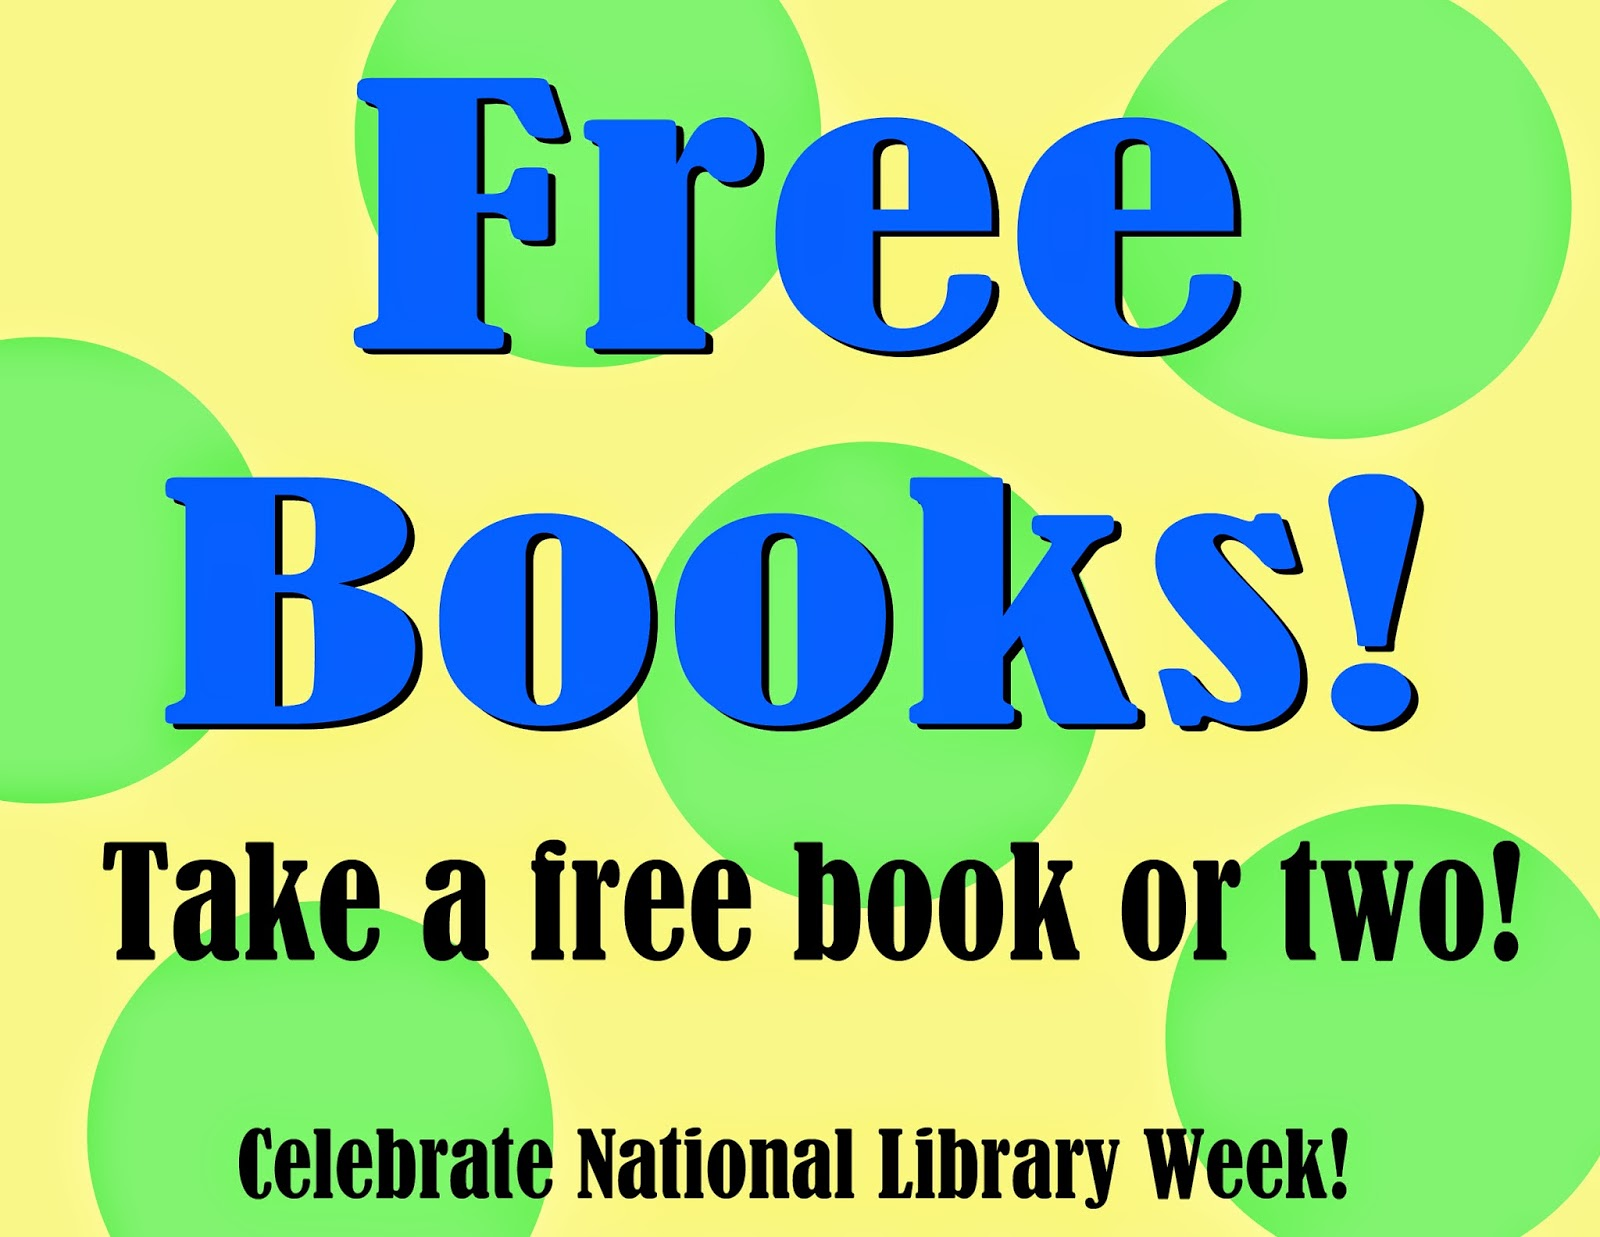 library books sign week display national librarian freebooks